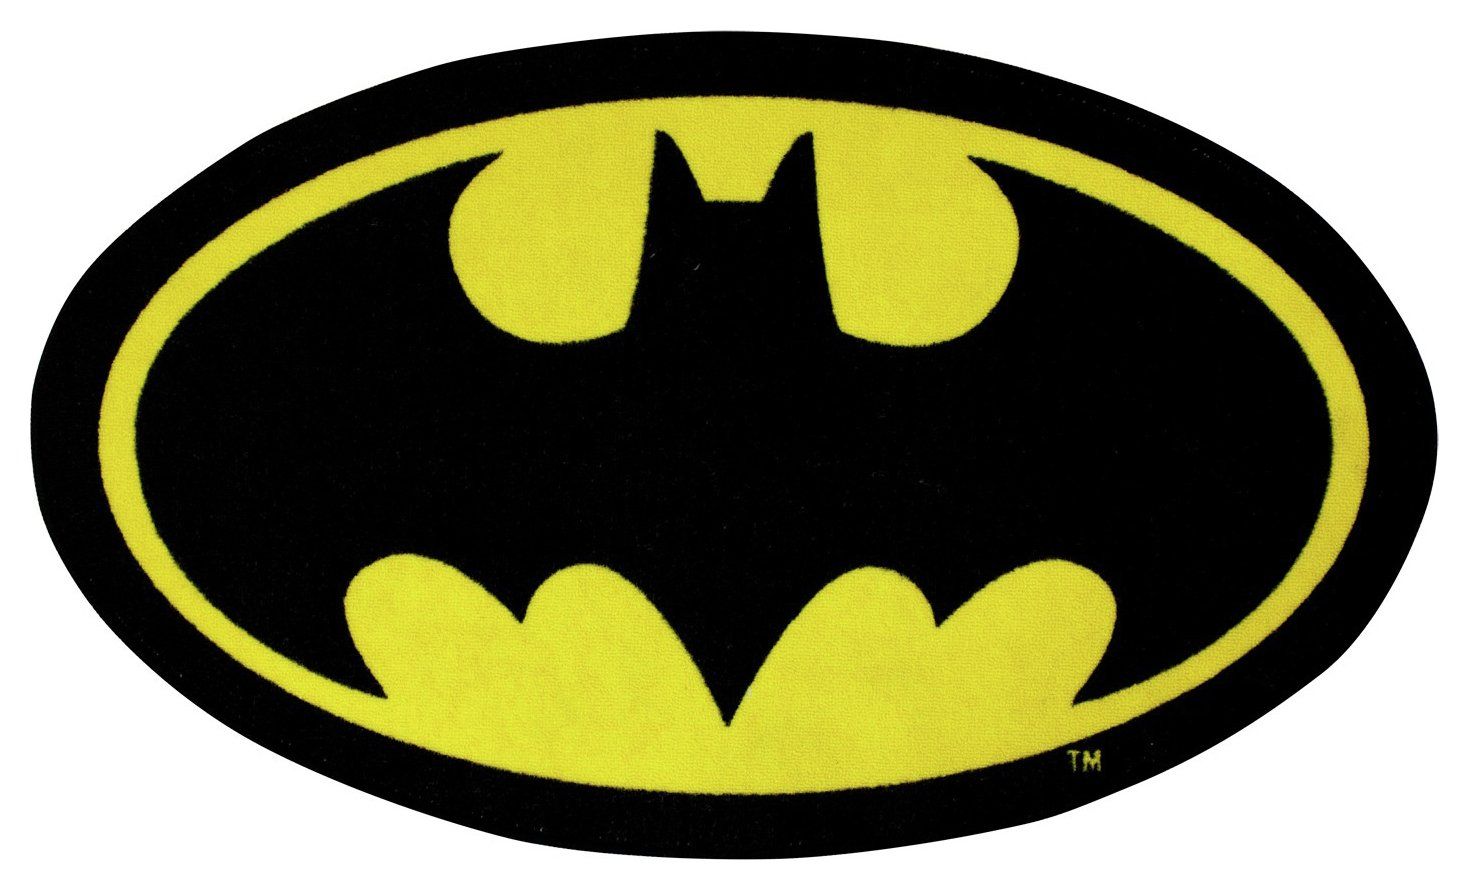 Image of Batman Batcave Shaped Rug.